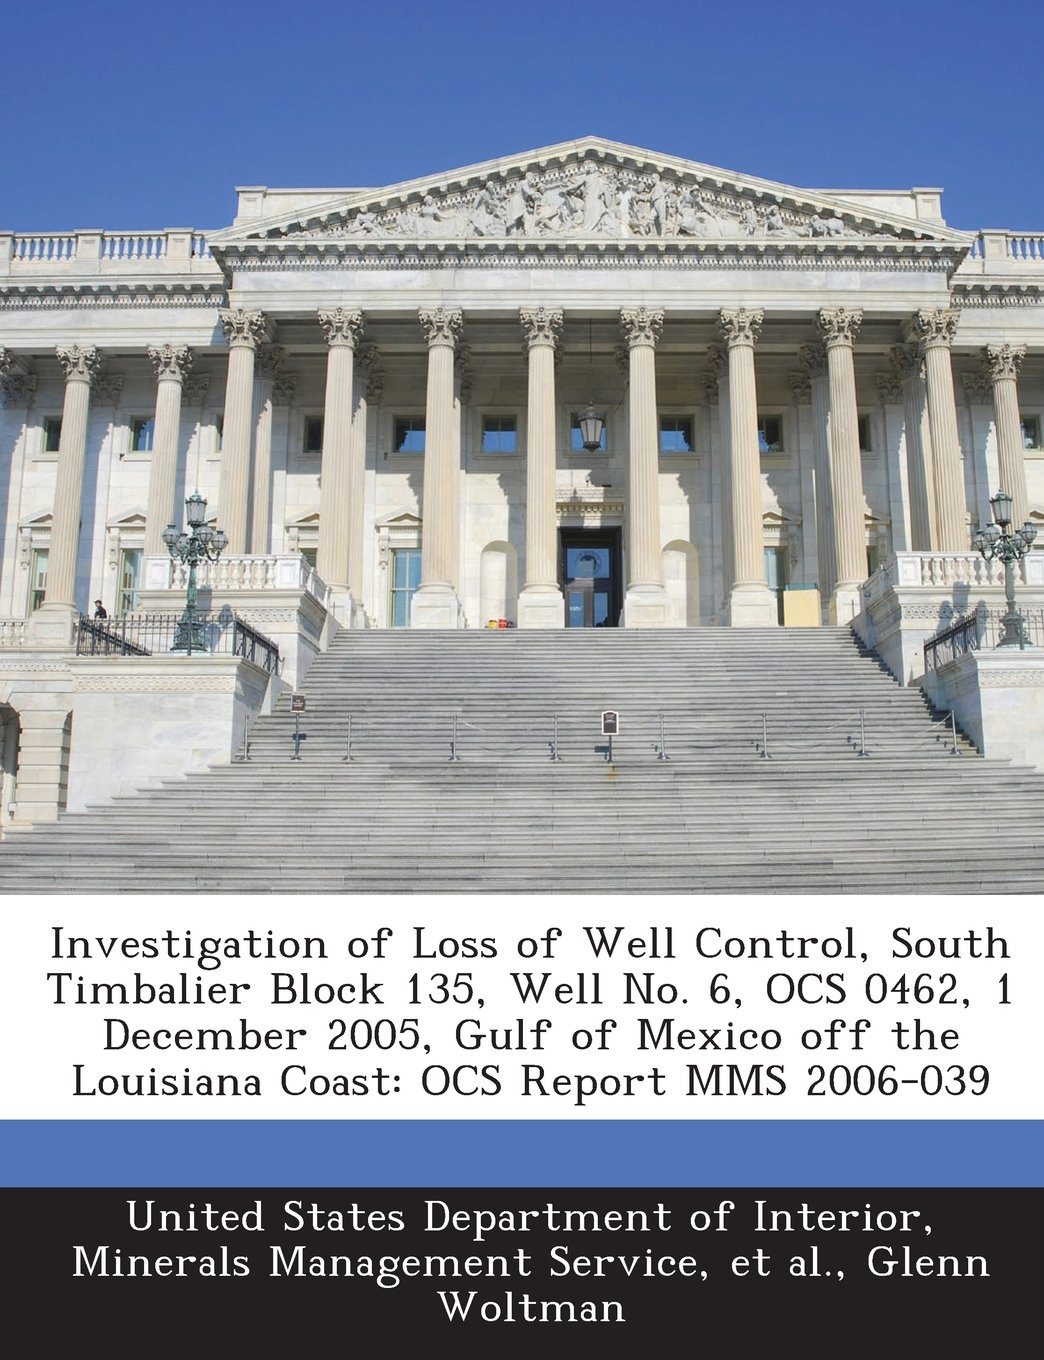 Read Online Investigation of Loss of Well Control, South Timbalier Block 135, Well No. 6, Ocs 0462, 1 December 2005, Gulf of Mexico Off the Louisiana Coast: Ocs R ebook